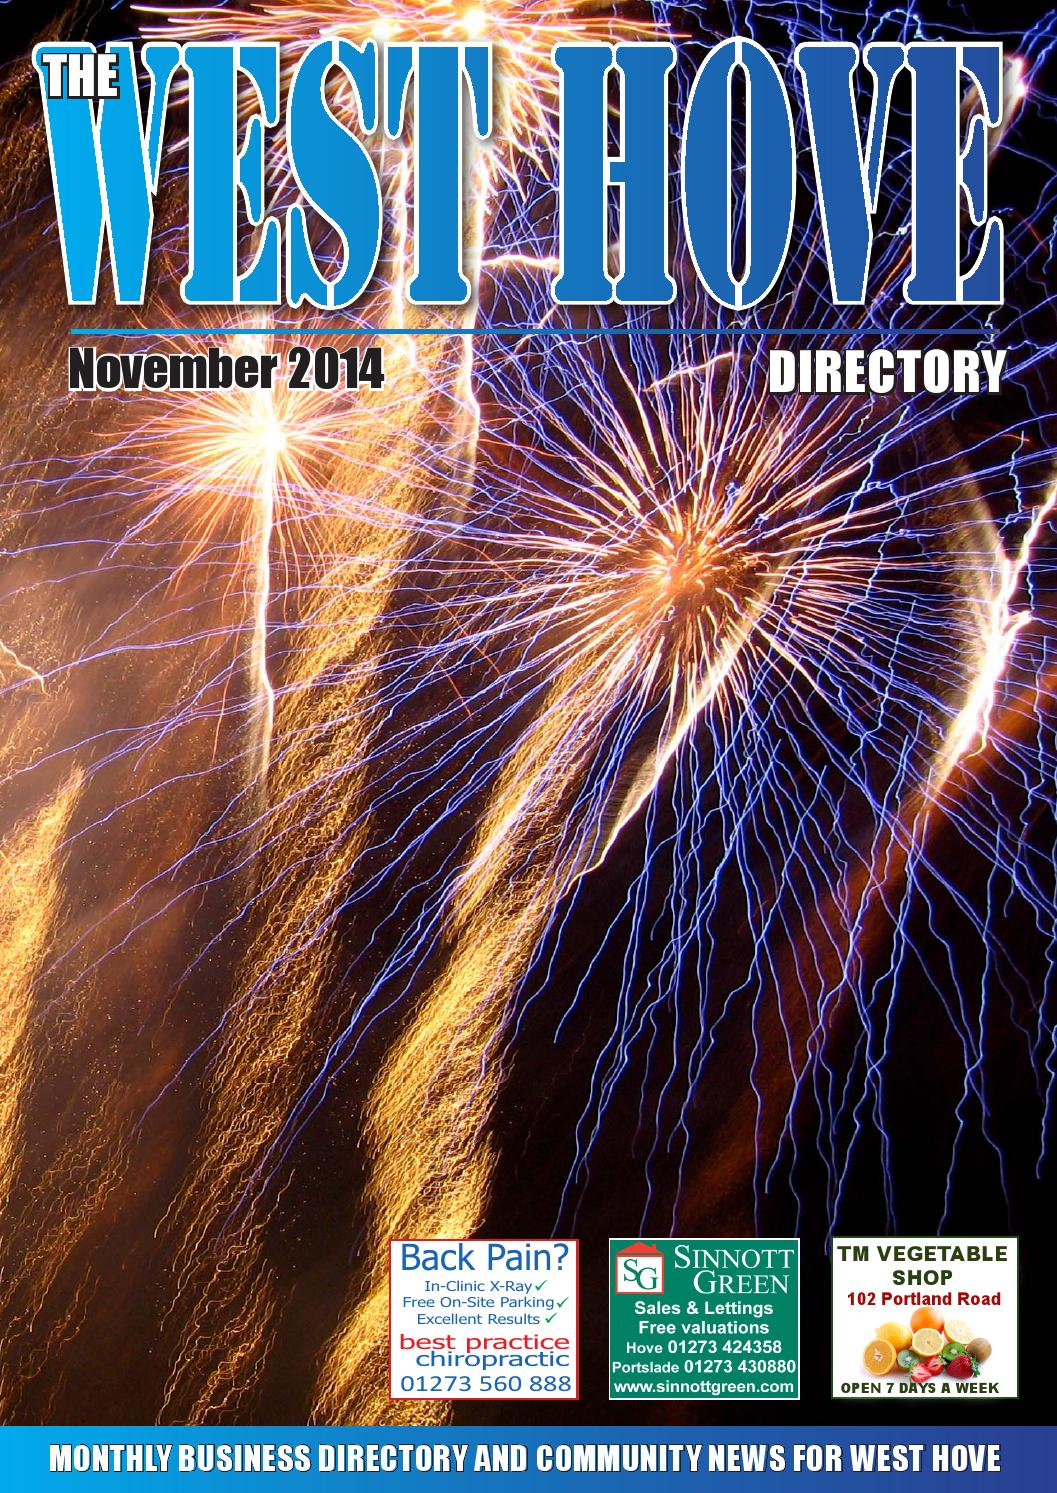 West Hove Directory November 2014 by Sussex Magazines - issuu